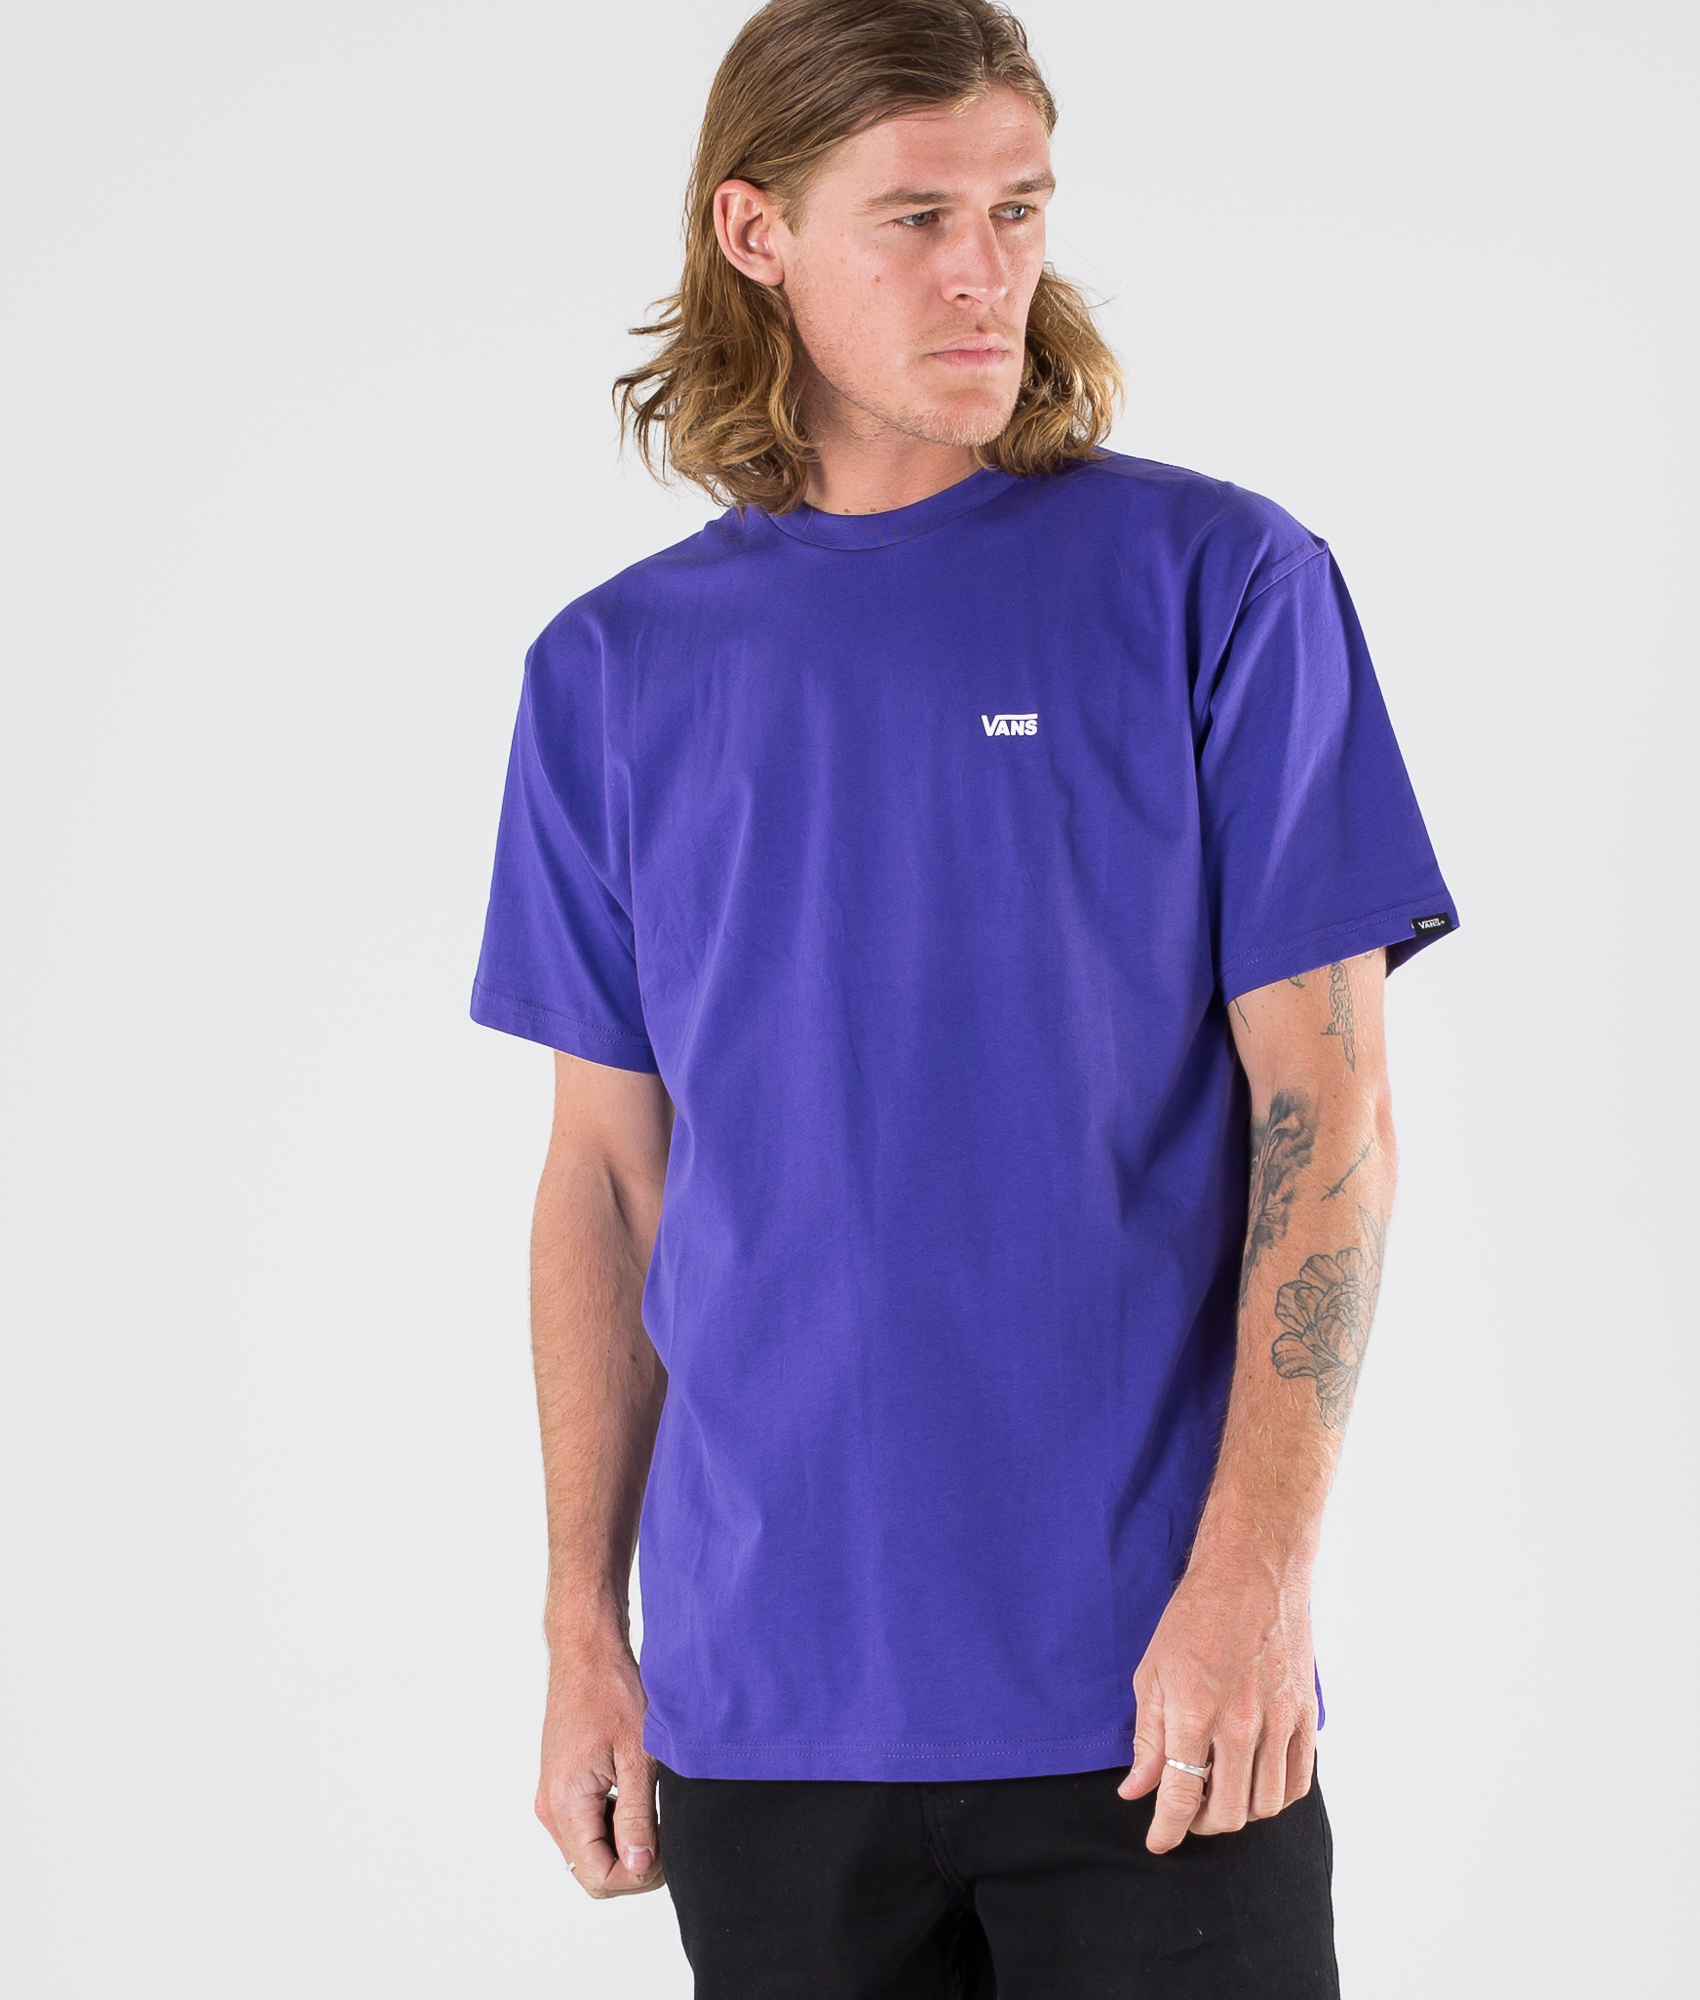 Vans Left Chest Logo T Shirt Vans Purple Ridestore Com